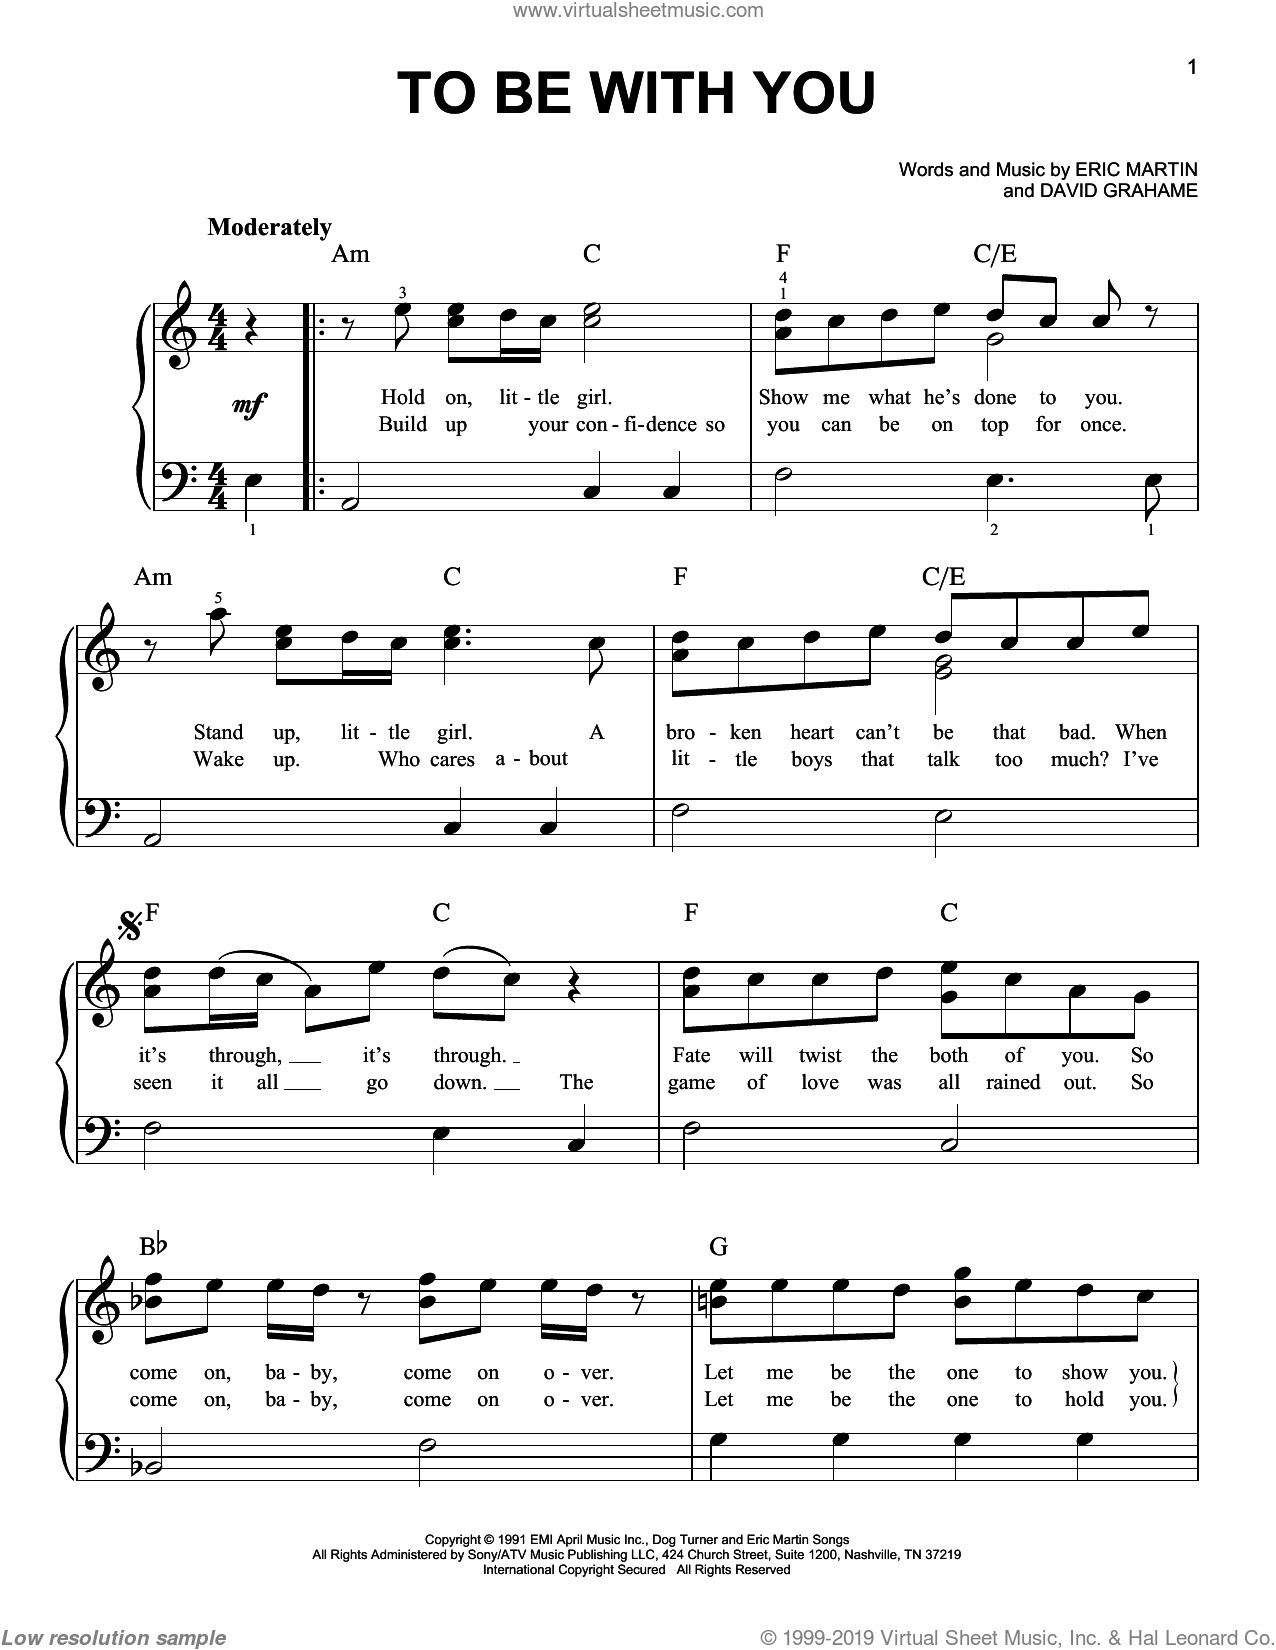 To Be With You sheet music for piano solo by Mr. Big, David Grahame and Eric Martin, easy skill level